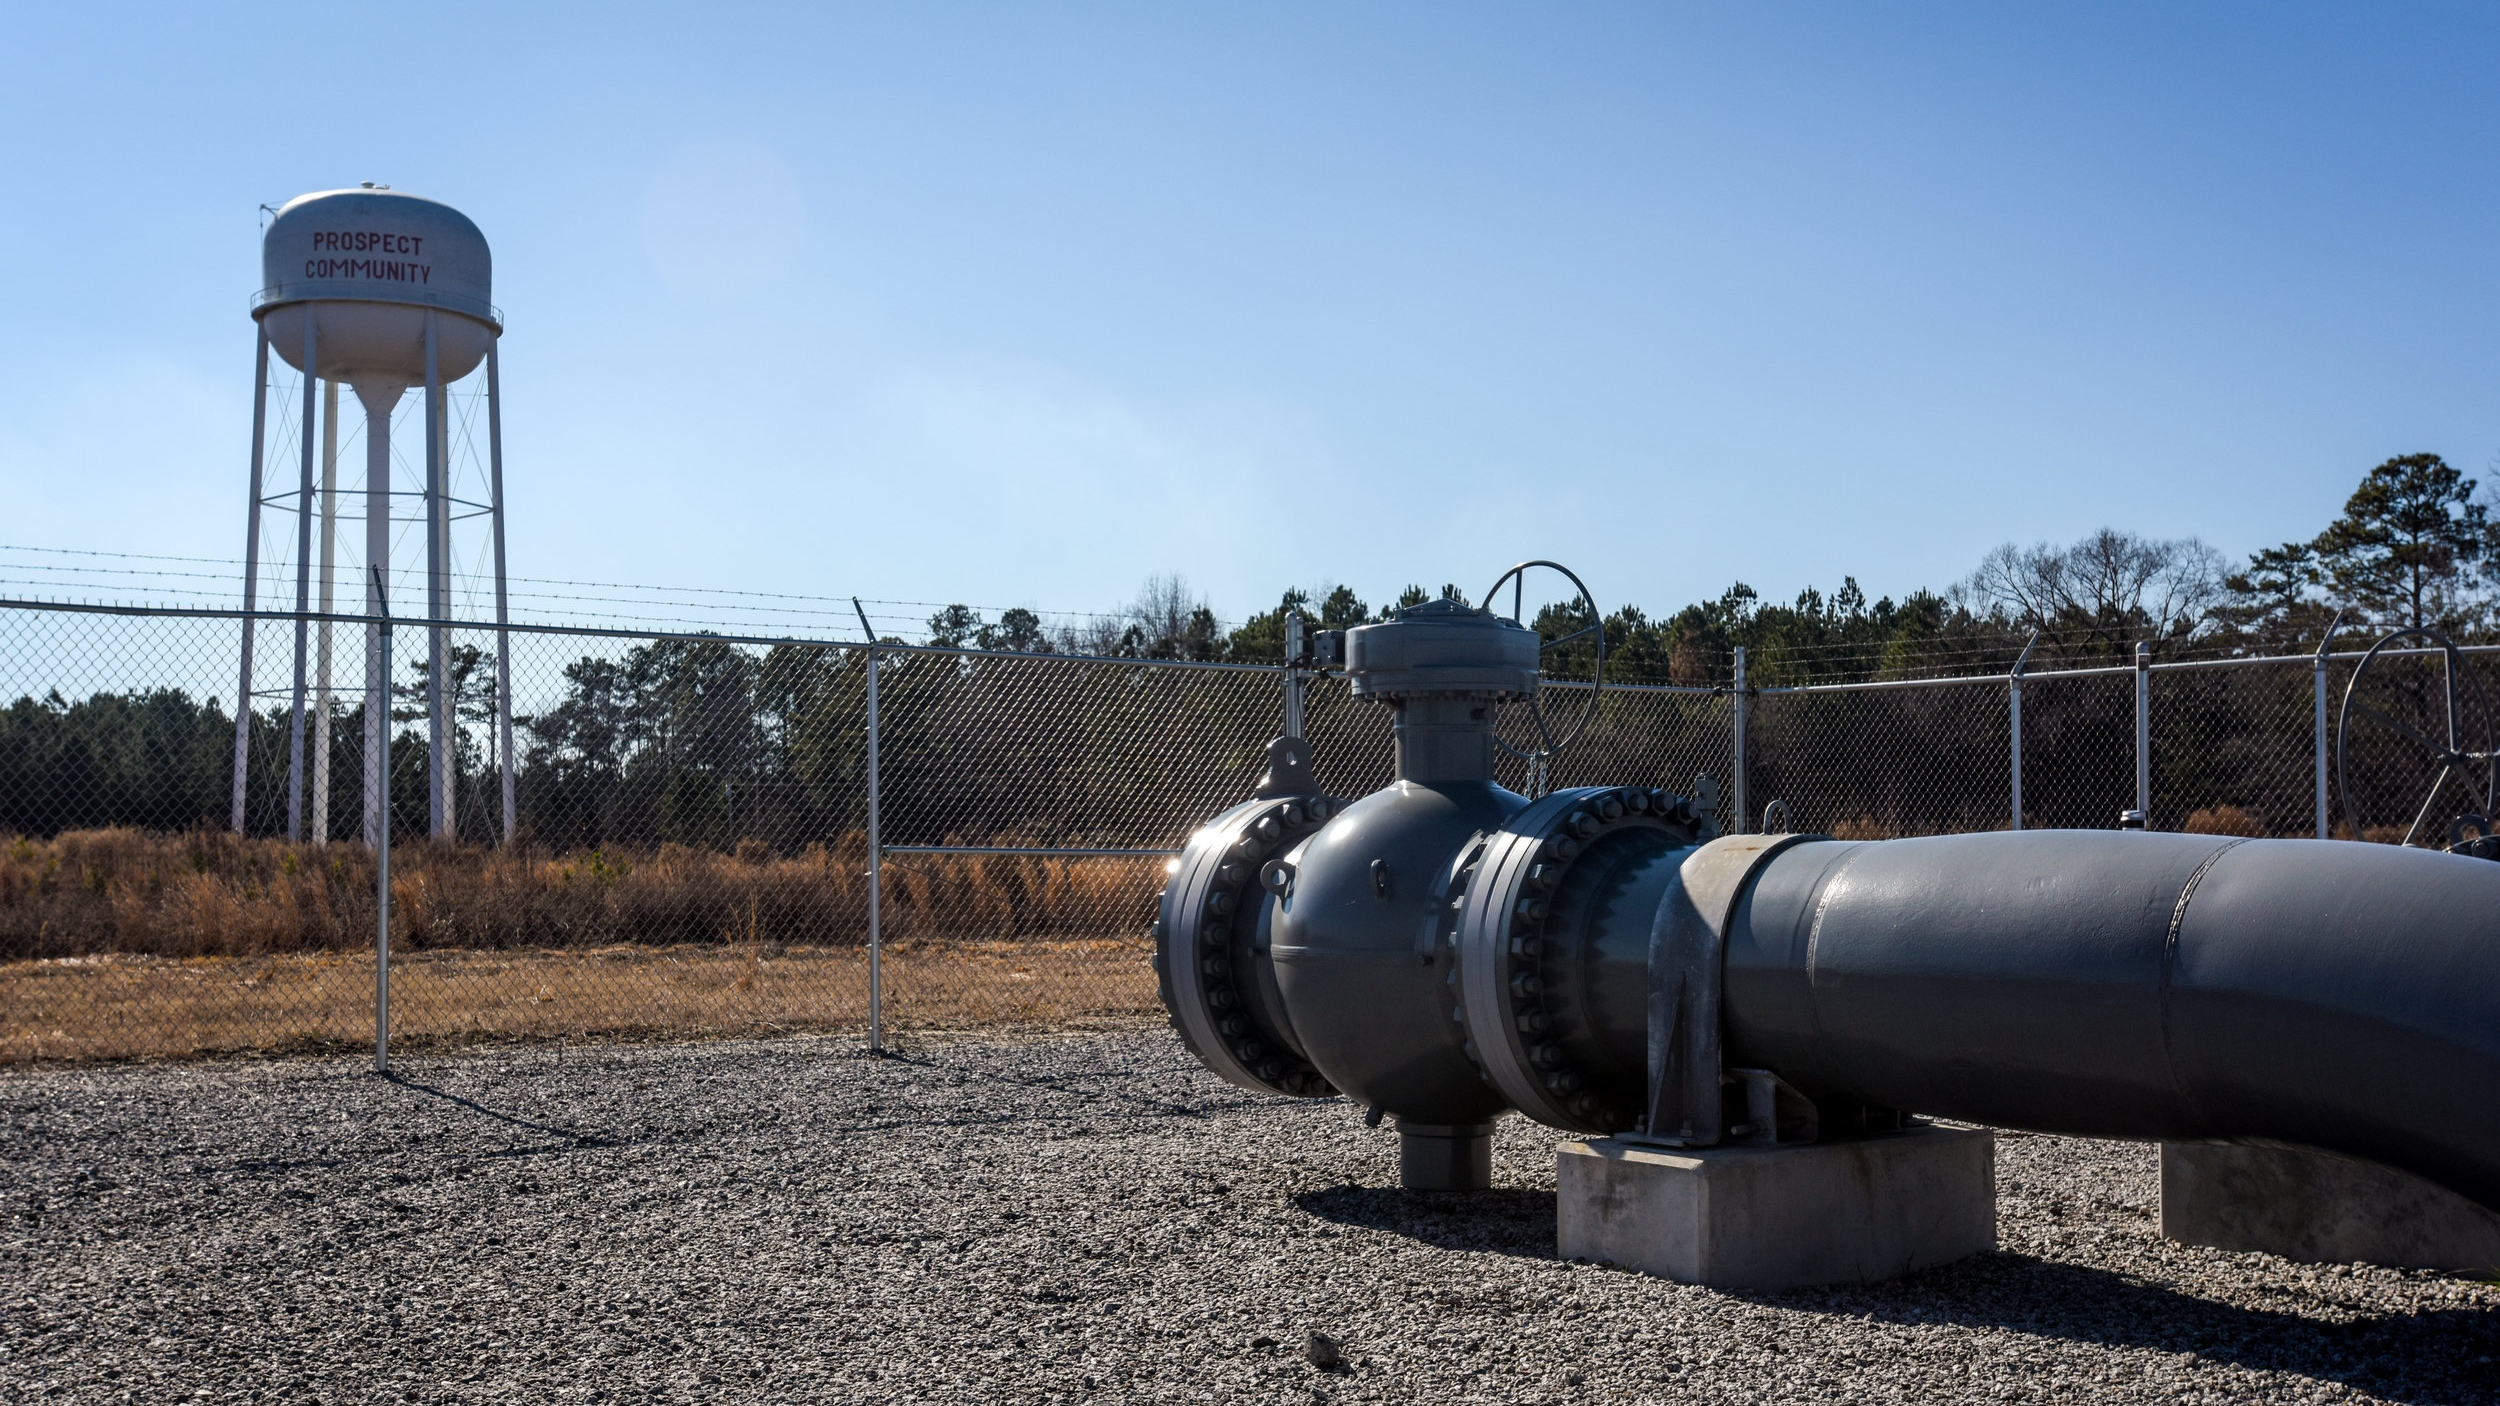 The Atlantic Coast Pipeline would be the third pipeline in the area between Pembroke and Prospect.